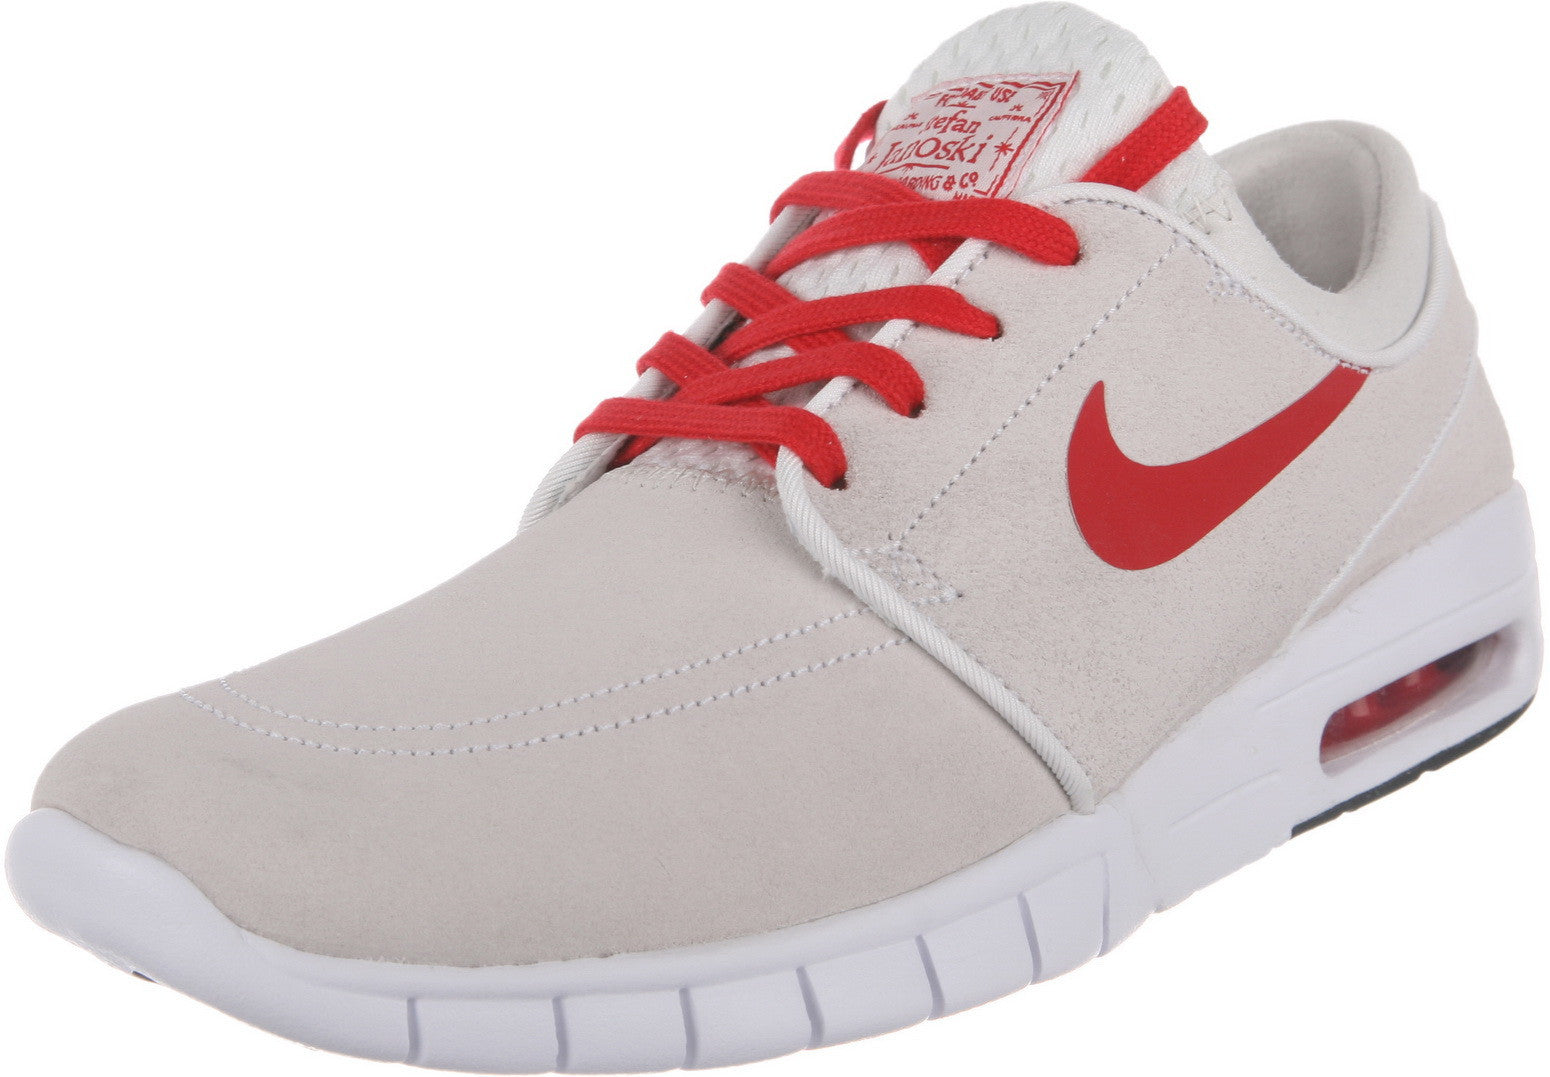 new style abab0 935cb NIKE STEFAN JANOSKI MAX L Mens Sneakers 685299-161 – Premium Laces NY